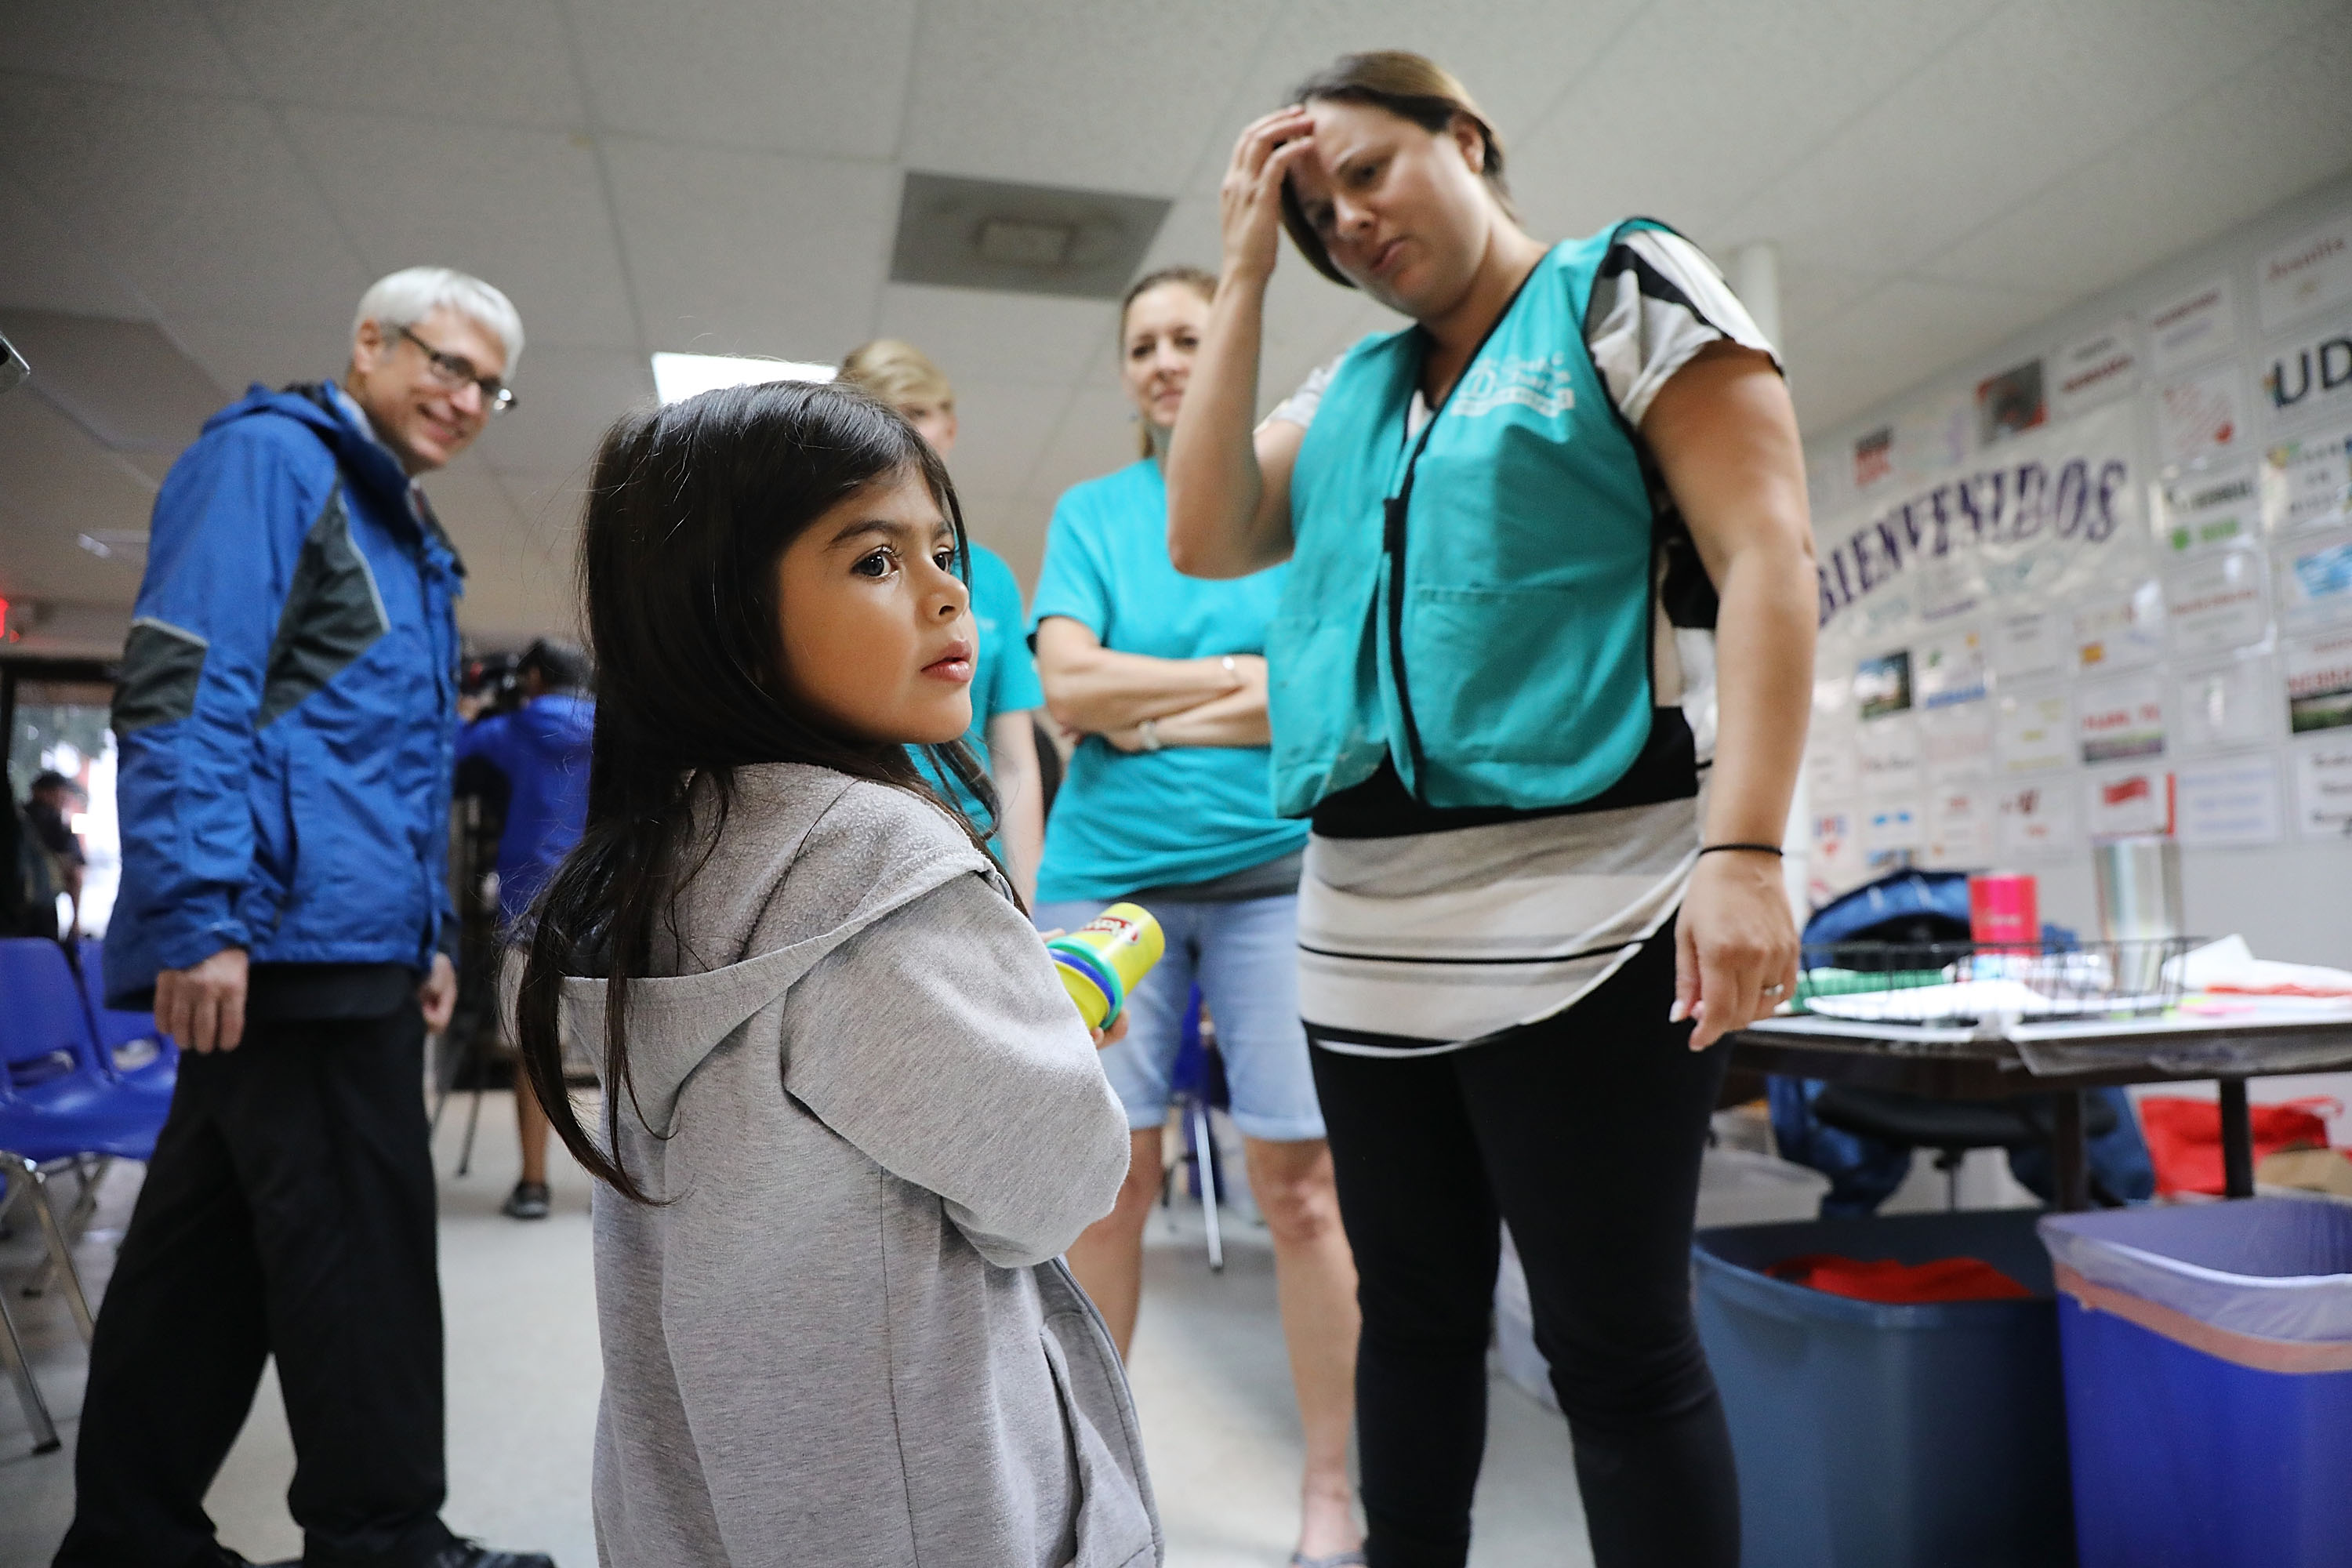 Jenquel, who crossed the U.S., Mexico border with her mother and siblings, speaks with volunteers at the Catholic Charities Humanitarian Respite Center in McAllen, Texas.(Spencer Platt/Getty Images)